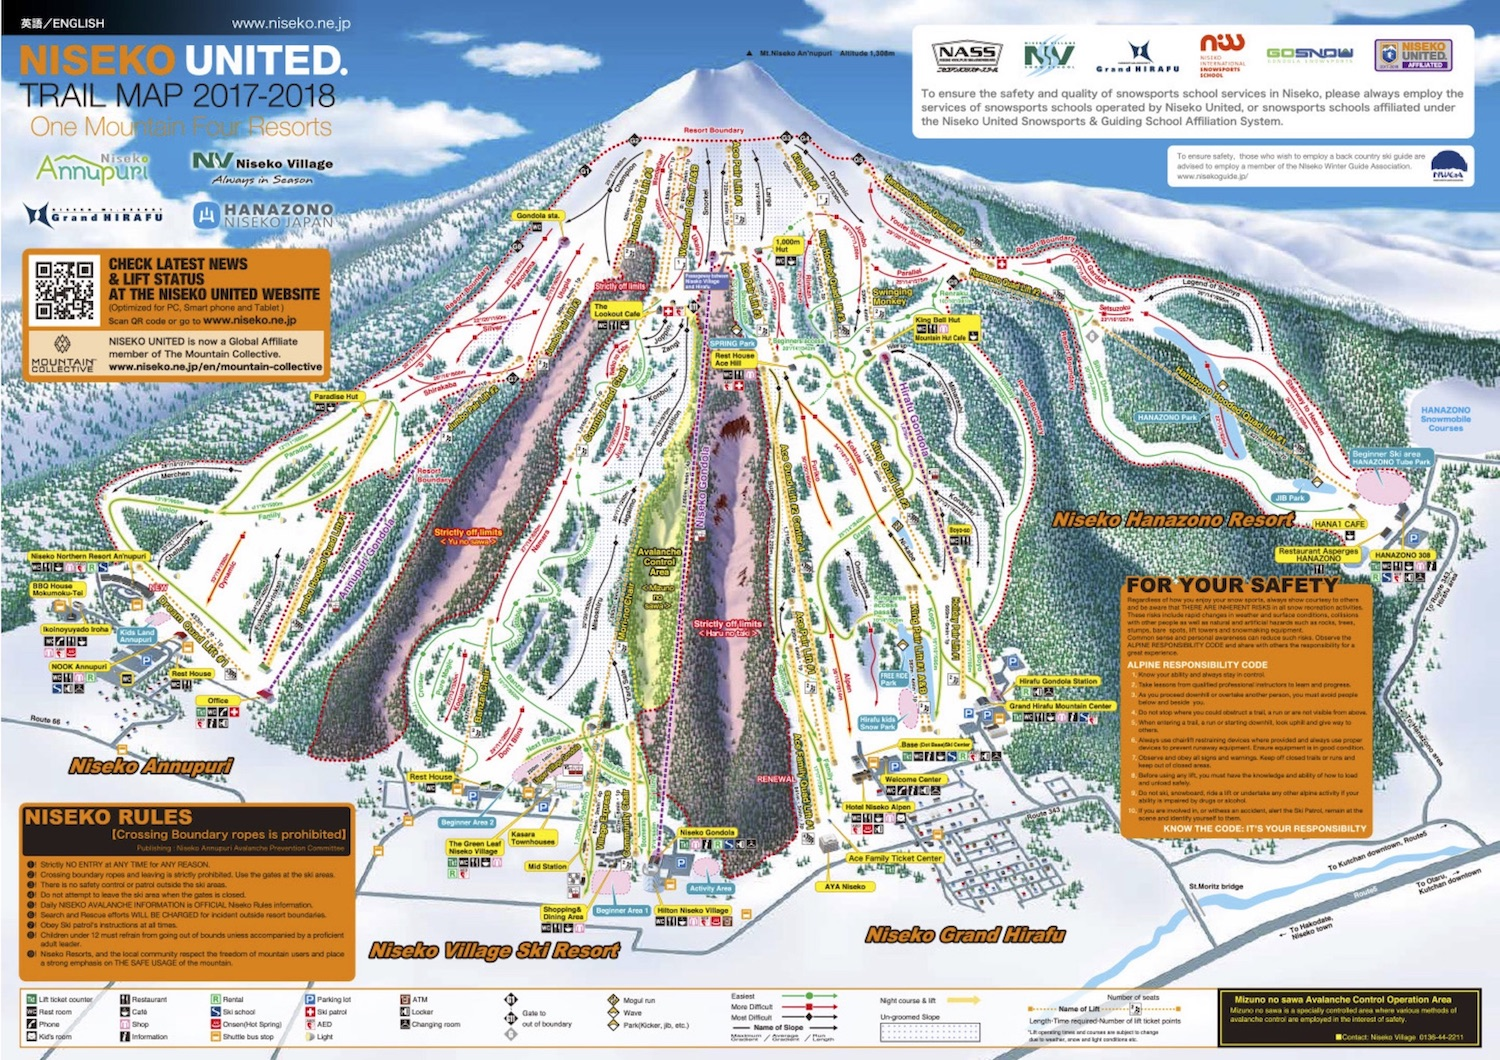 Niseko Grand Hirafu Piste / Trail Map